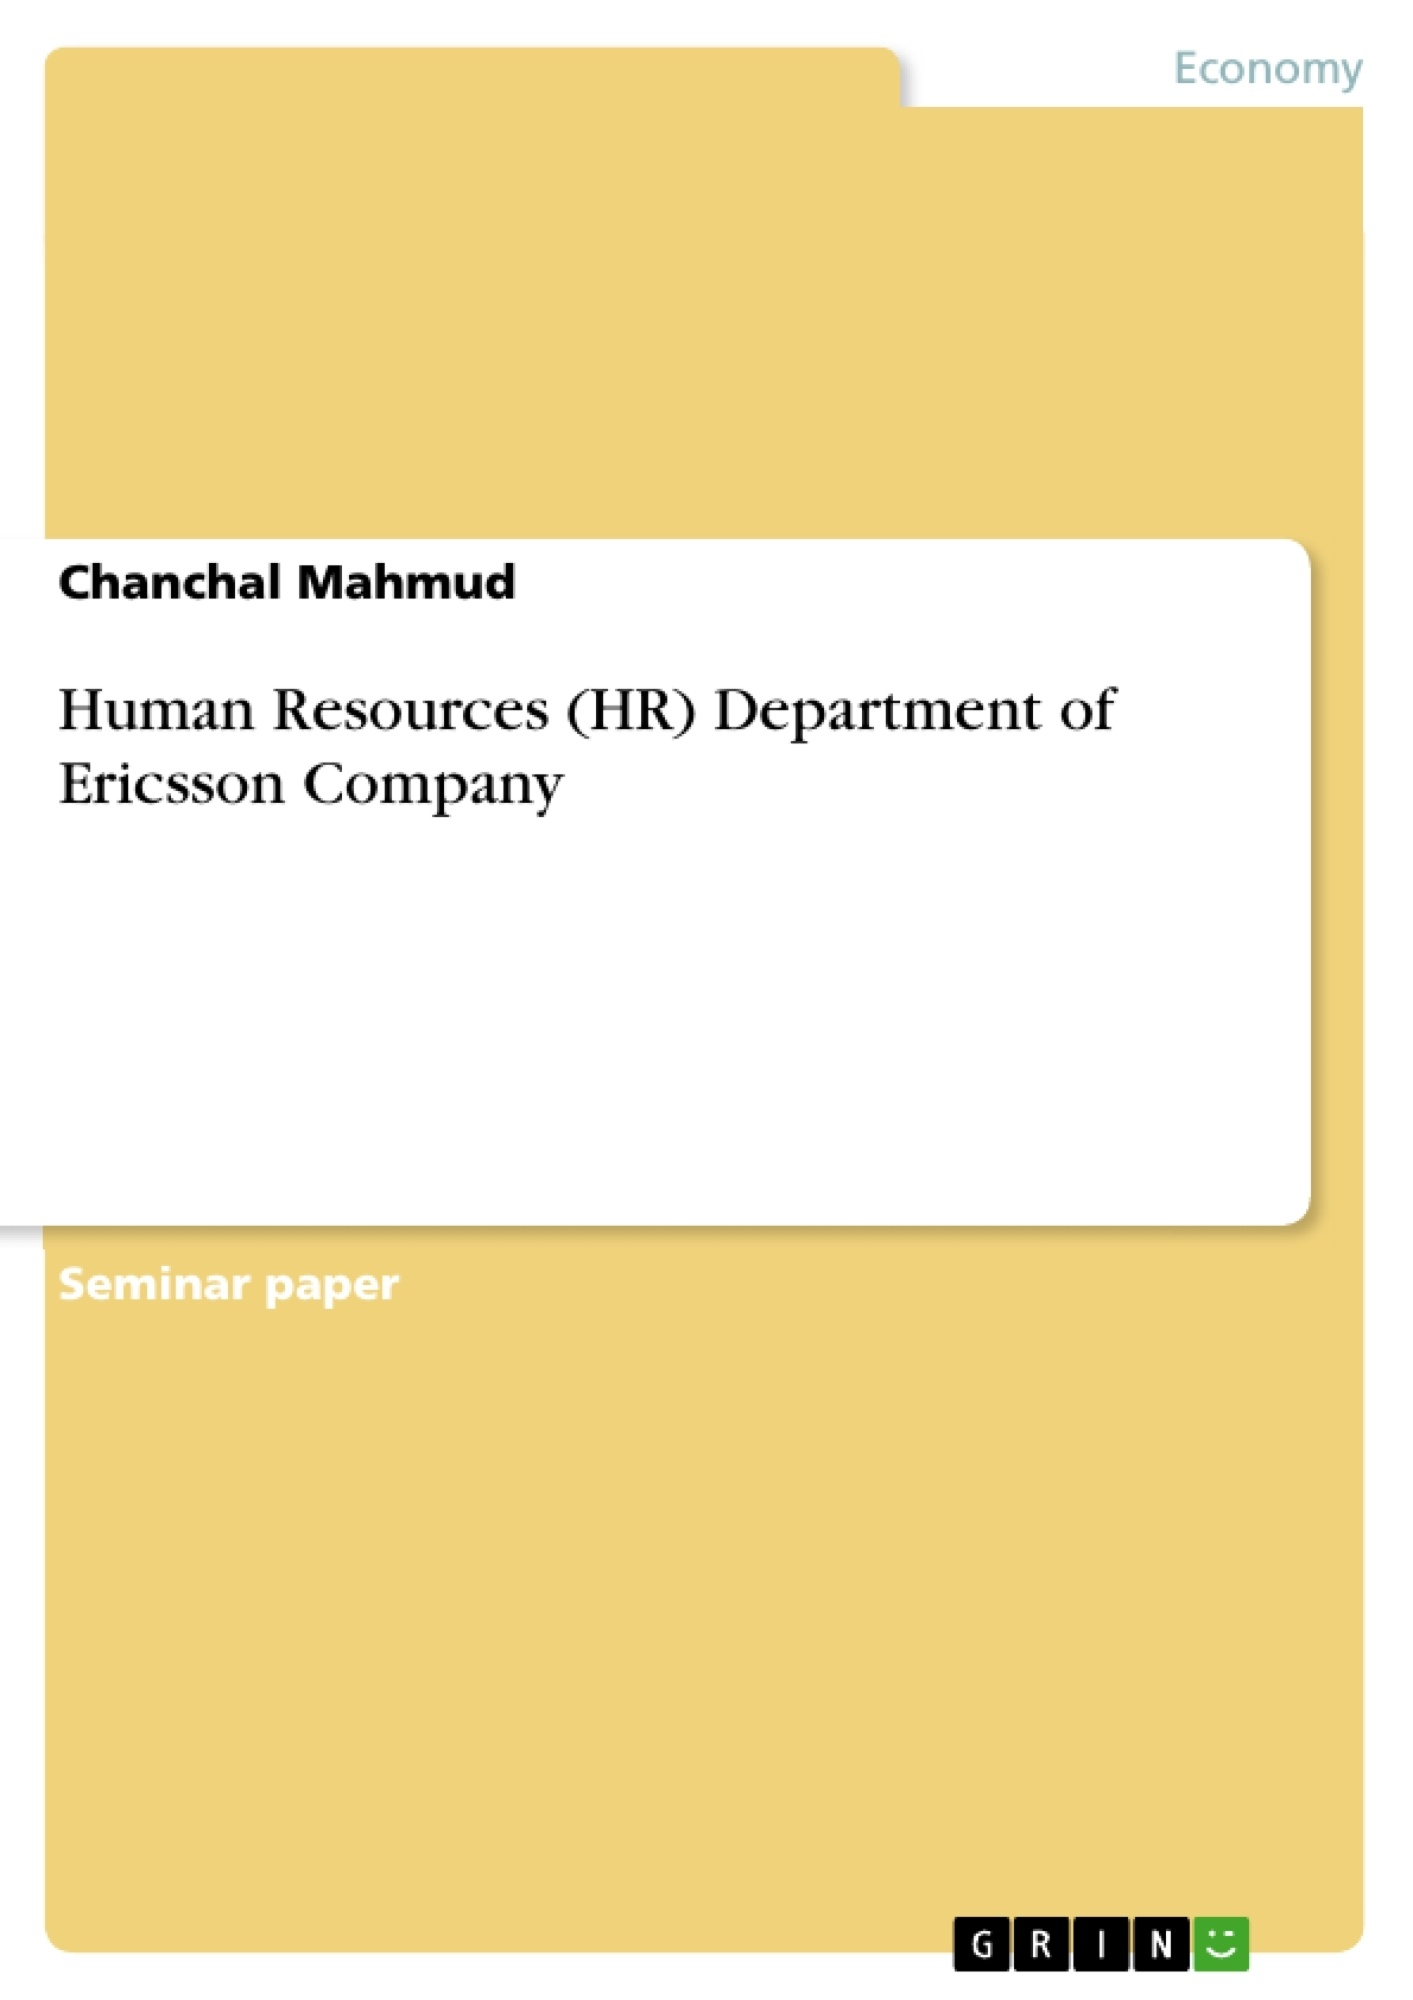 Title: Human Resources (HR) Department of Ericsson Company